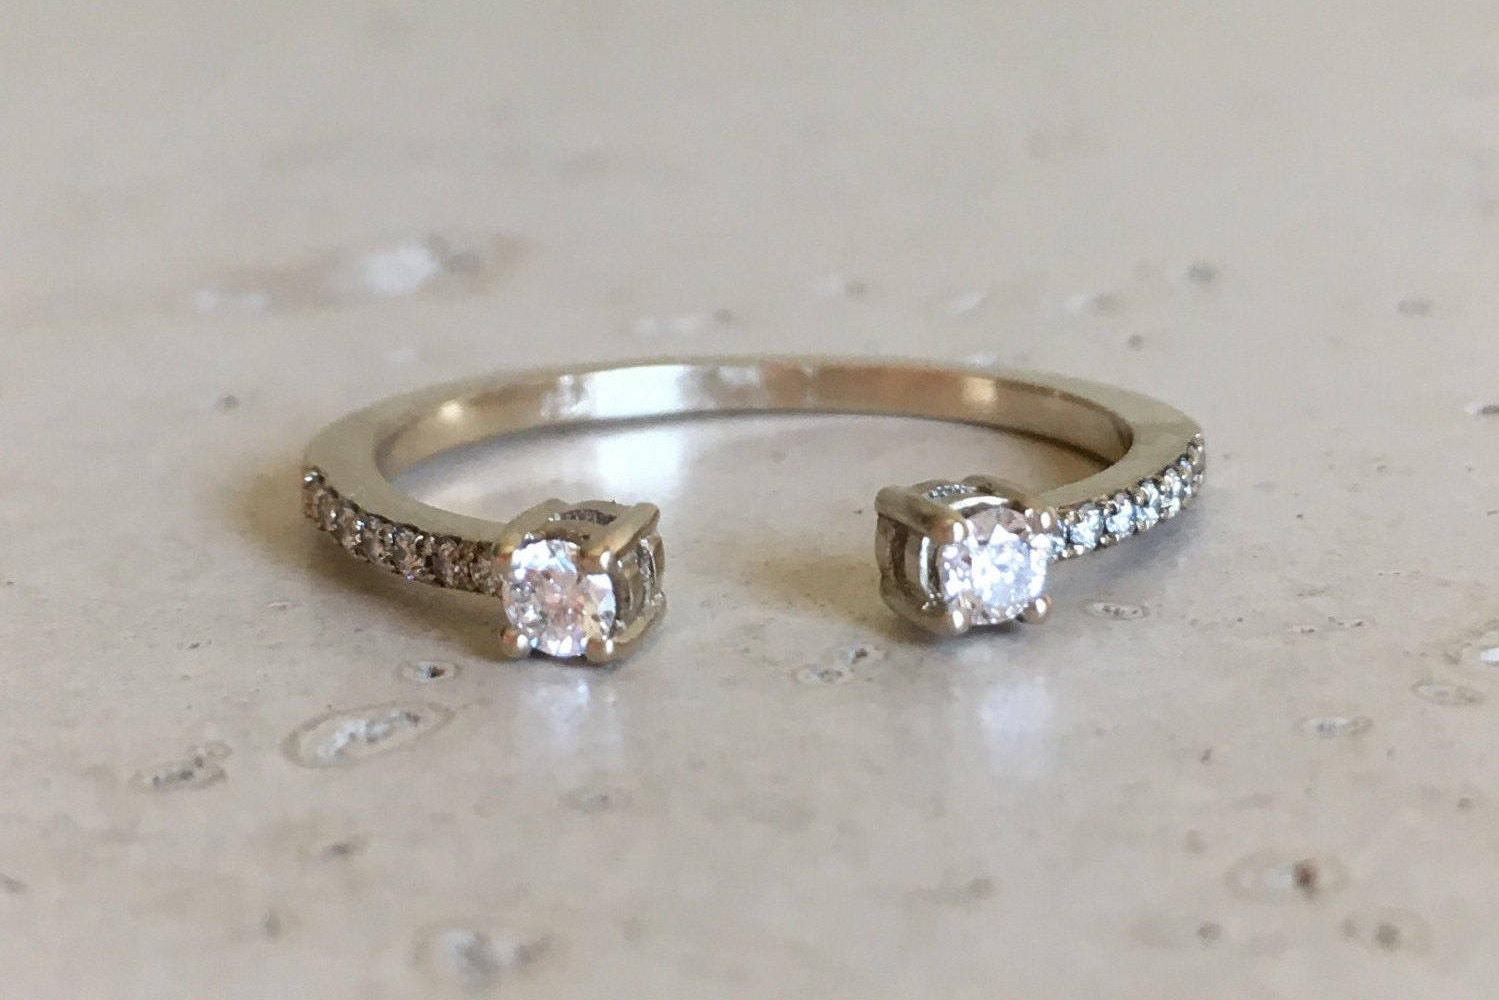 stack engagement rings ideas with for solitaire decor ring iwza perfect fullxfull a bands wedding il band crown diamond to simple your stacking